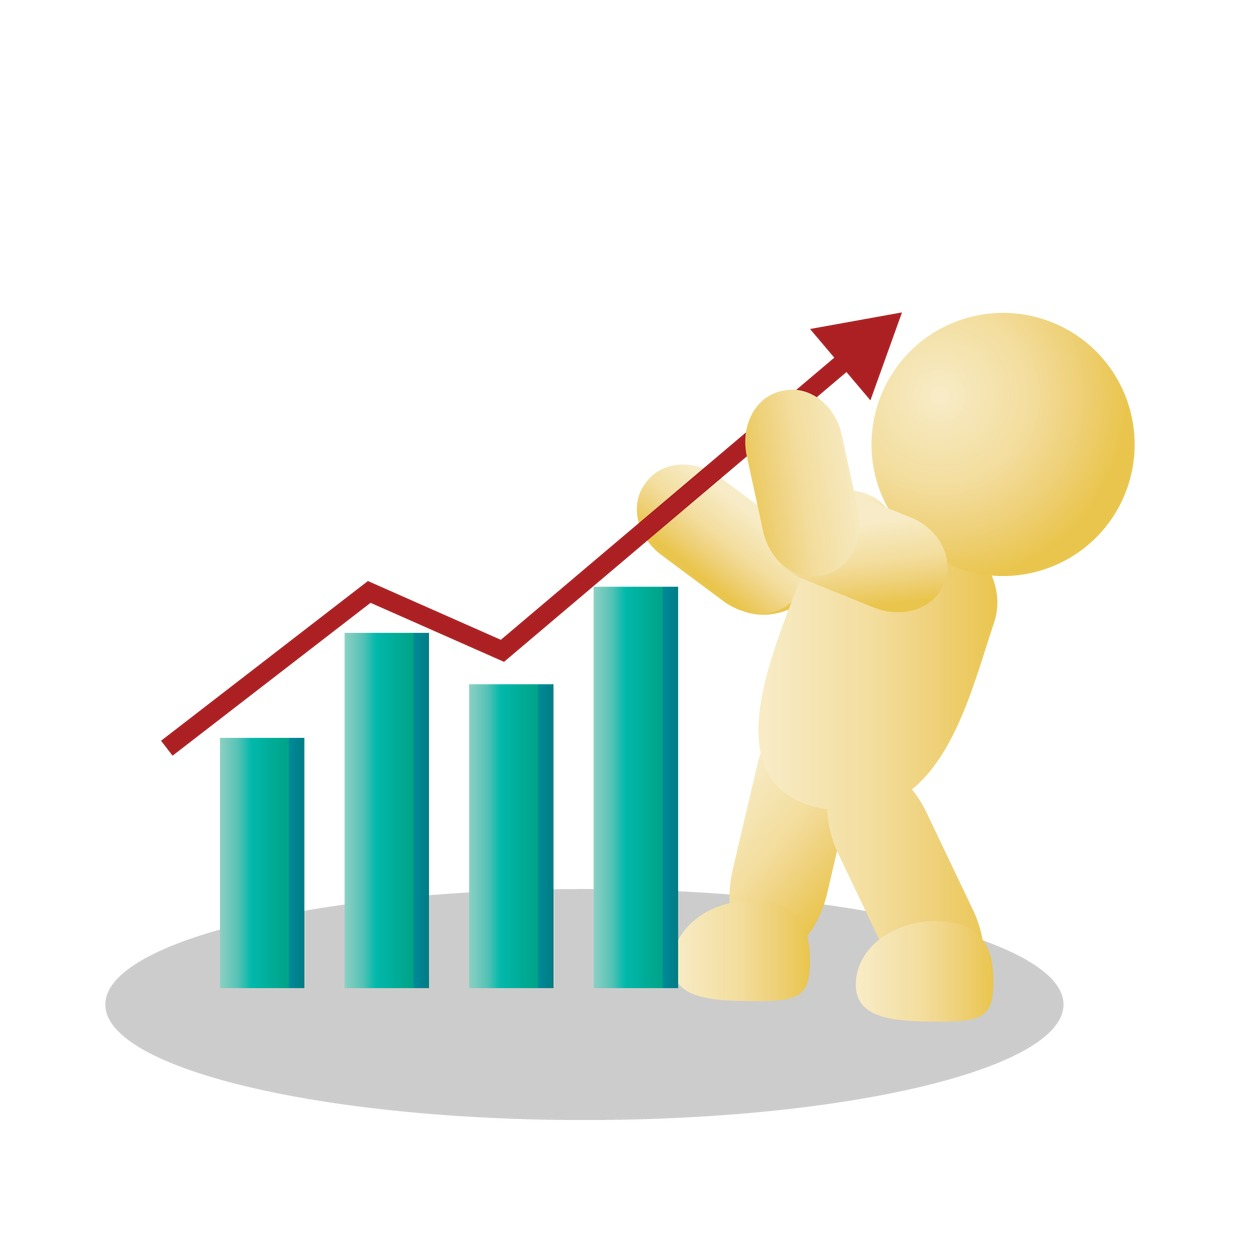 Graph clipart job outlook Email MS Improve EmailMerge Outlook